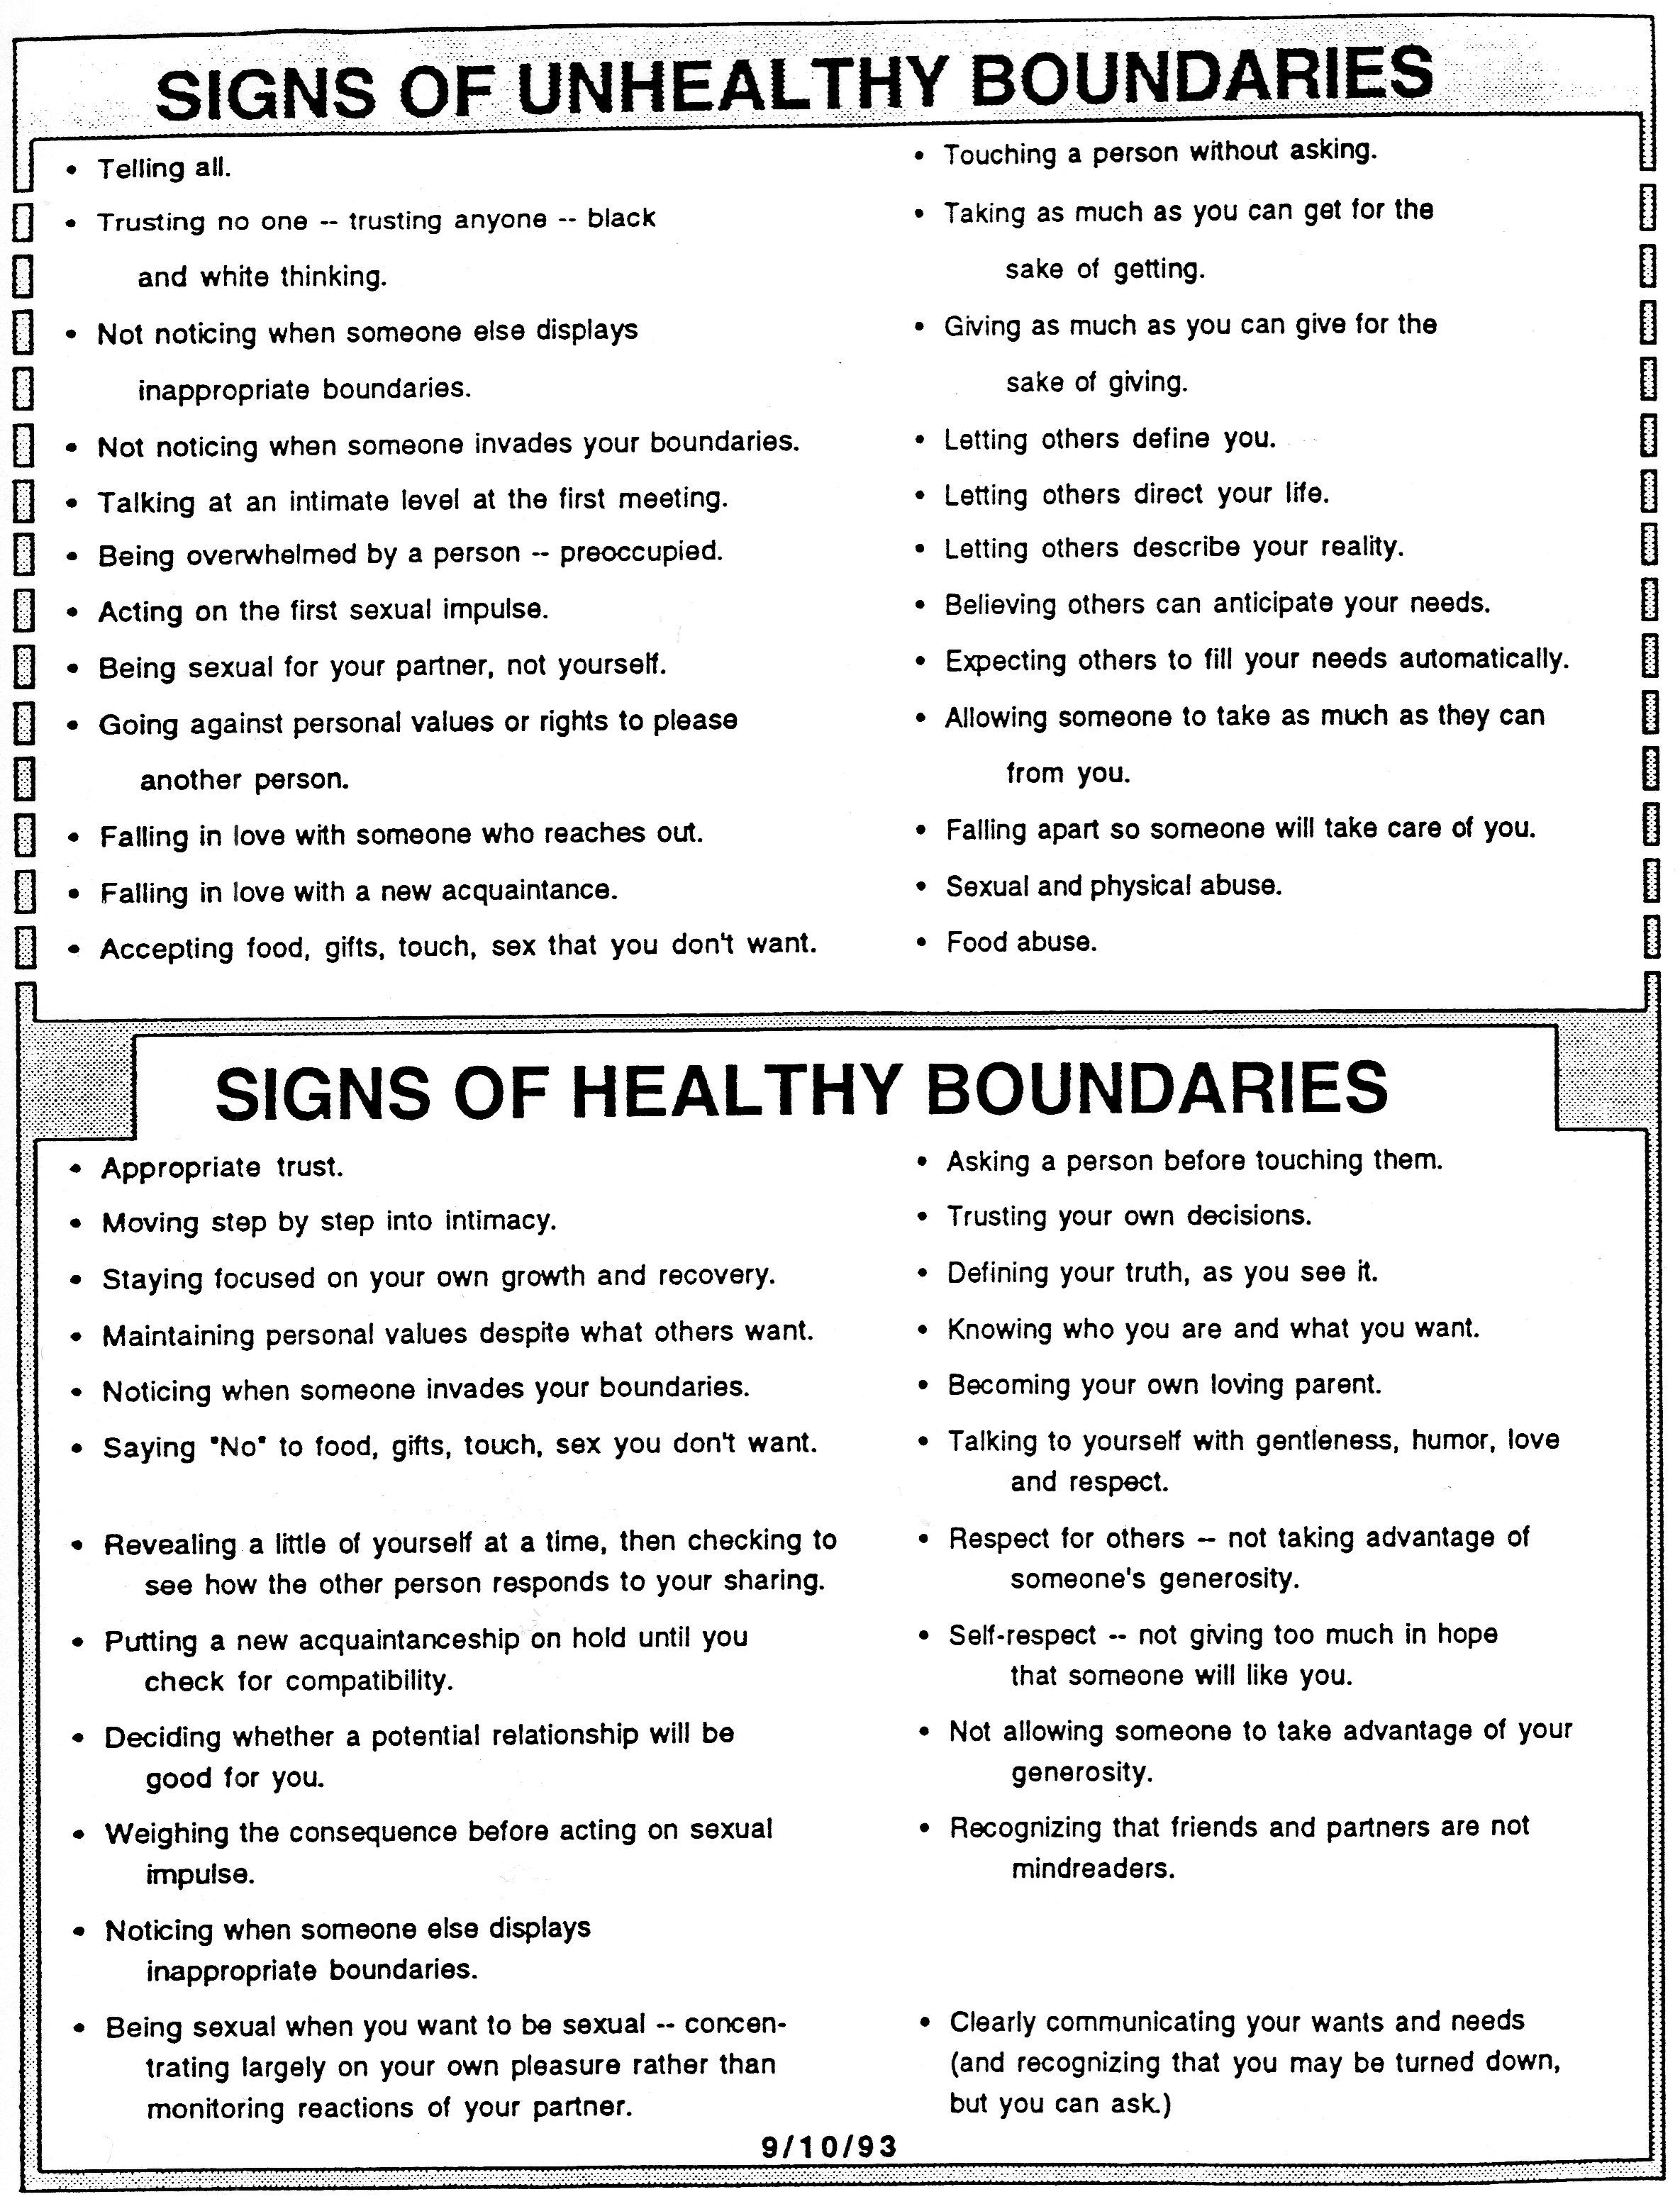 Characteristics of unhealthy and healthy boundaries ...